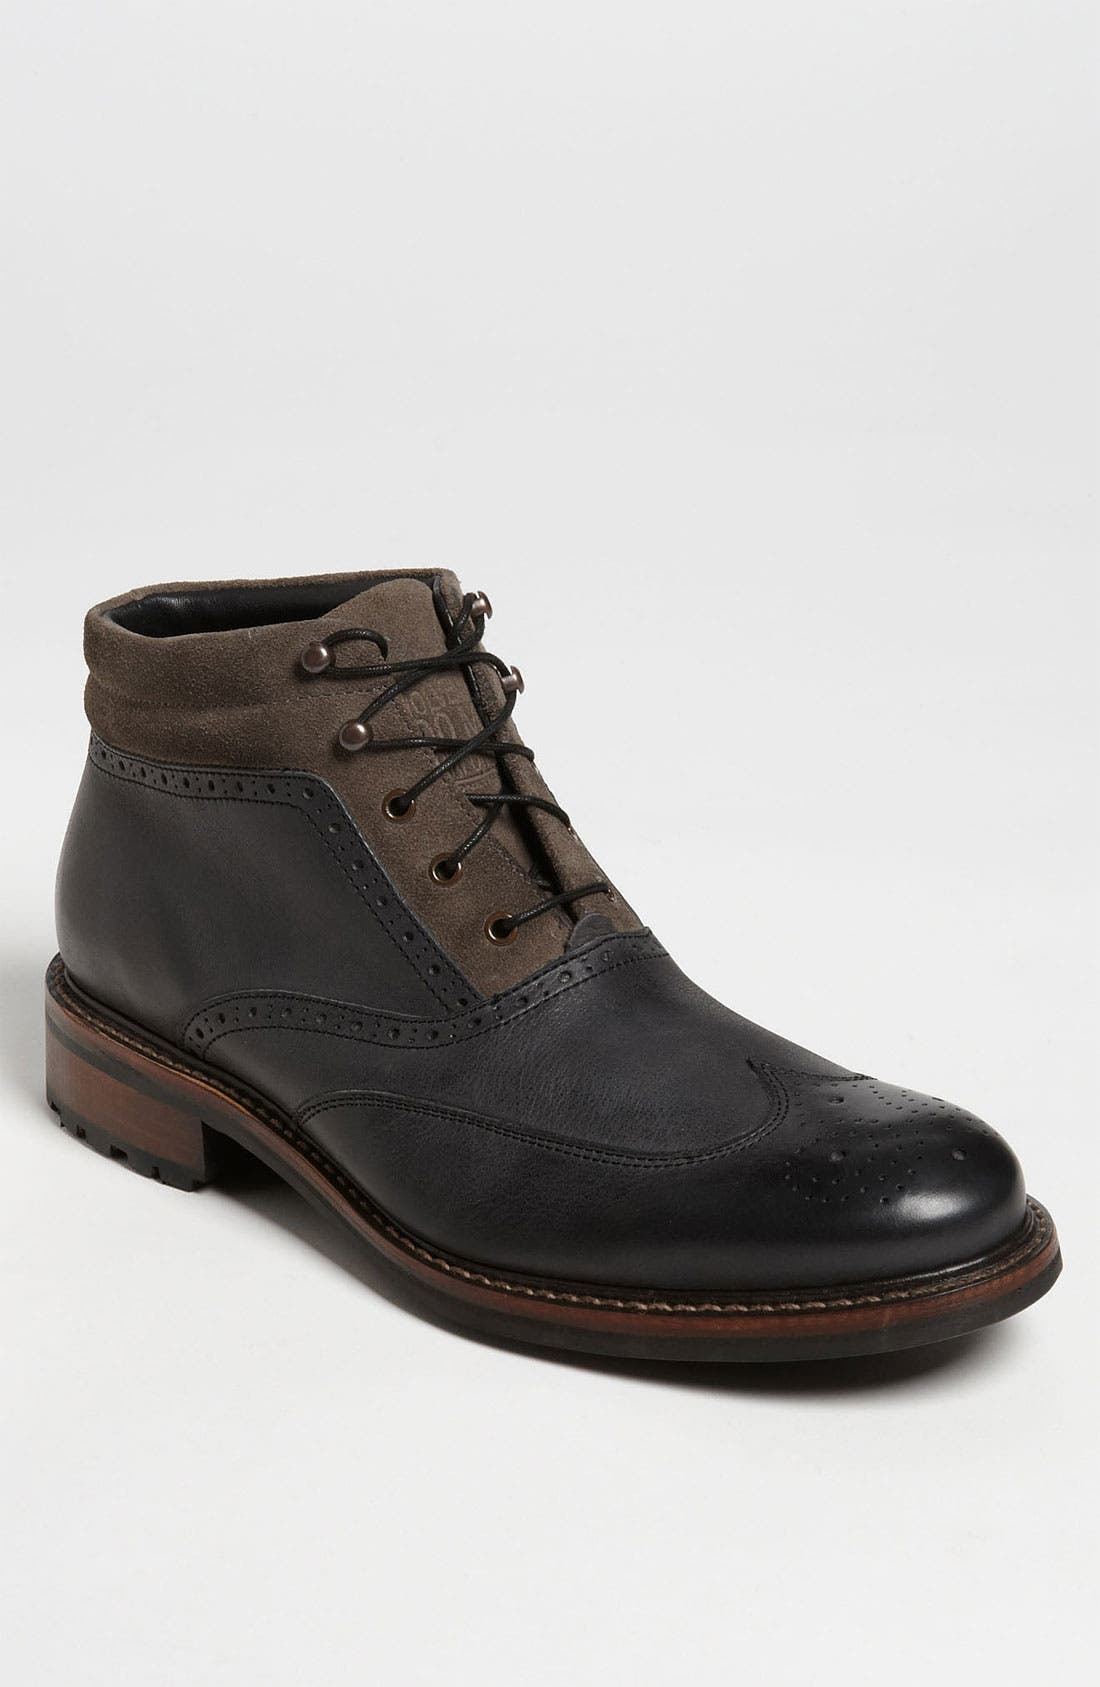 Main Image - Wolverine '1000 Mile - Wyatt' Wingtip Boot